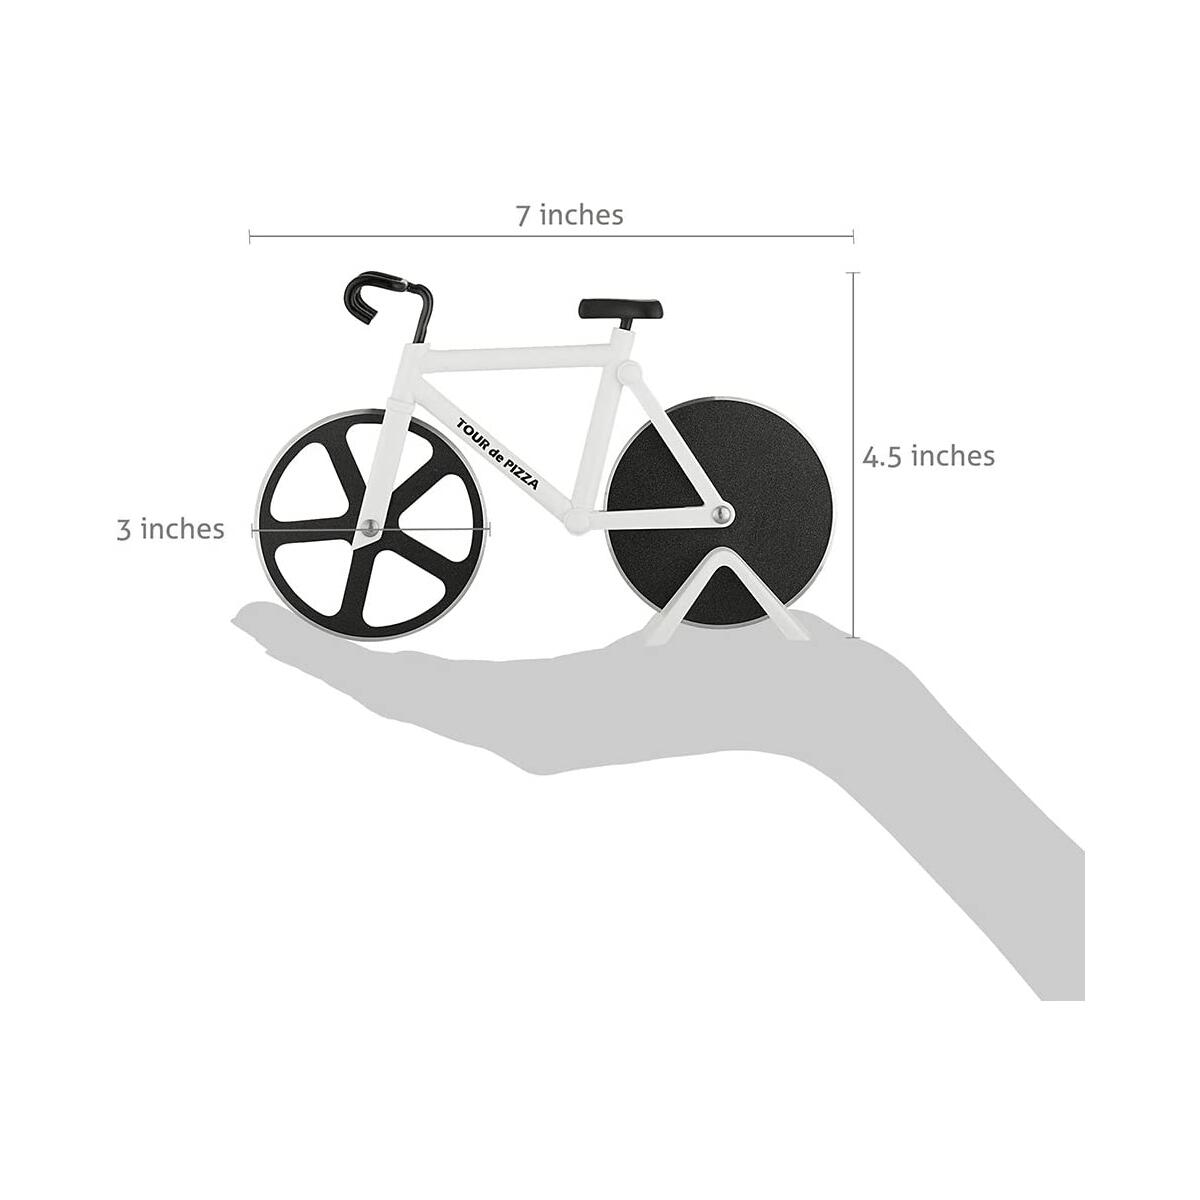 Bicycle Pizza Cutter - TOUR de PIZZA - Dual Stainless Steel Non-Stick Cutting Wheels - Display Stand - A very Cool Gift for the Kitchen by SoHo Kitchen